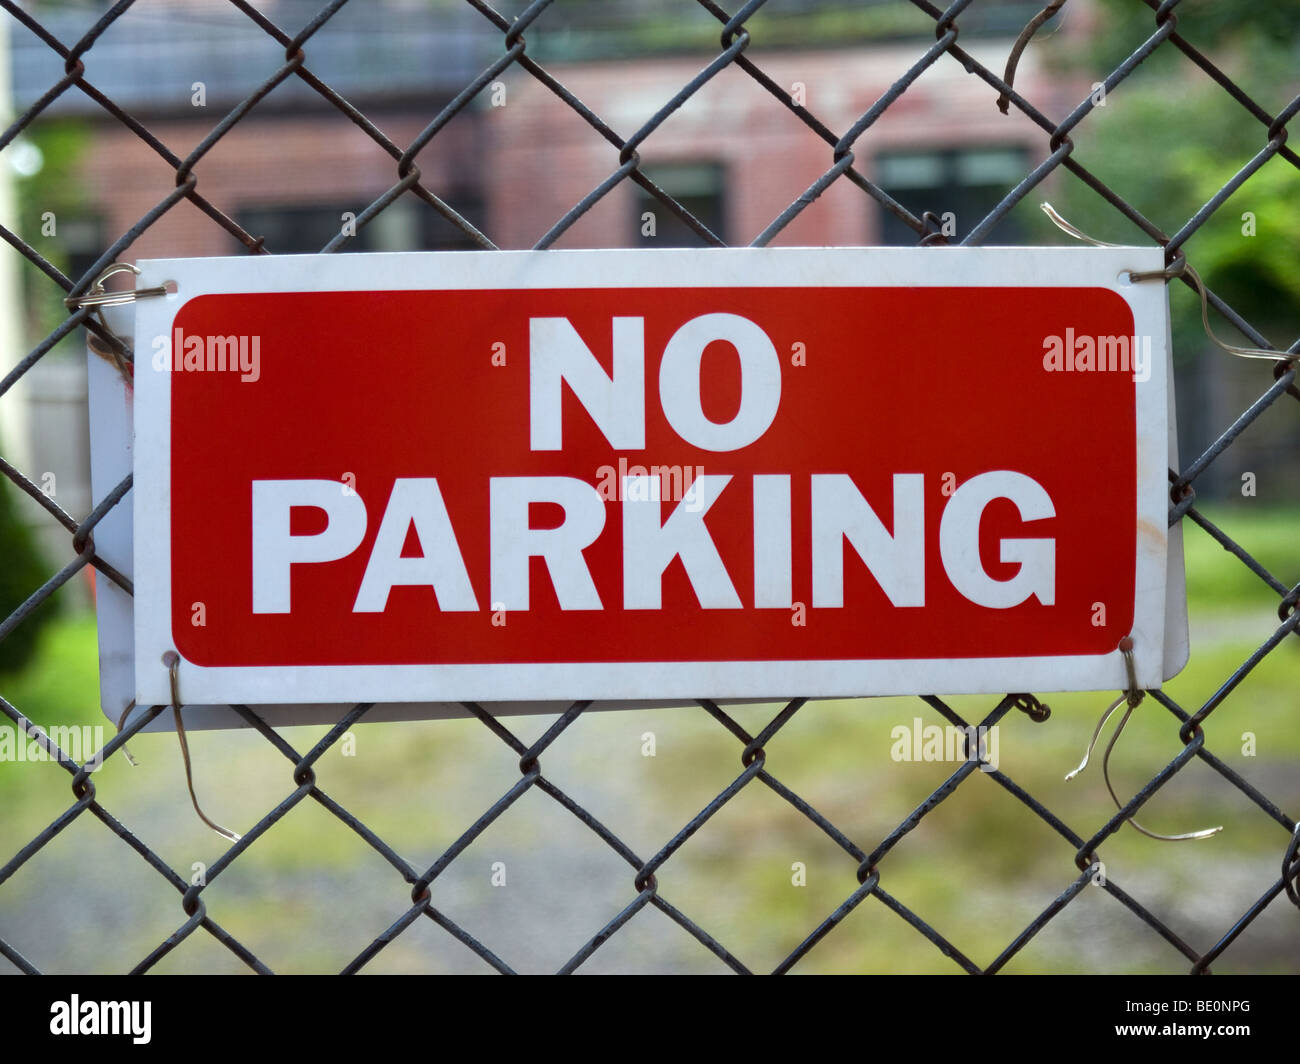 A No Parking sign hunging on a fence. - Stock Image